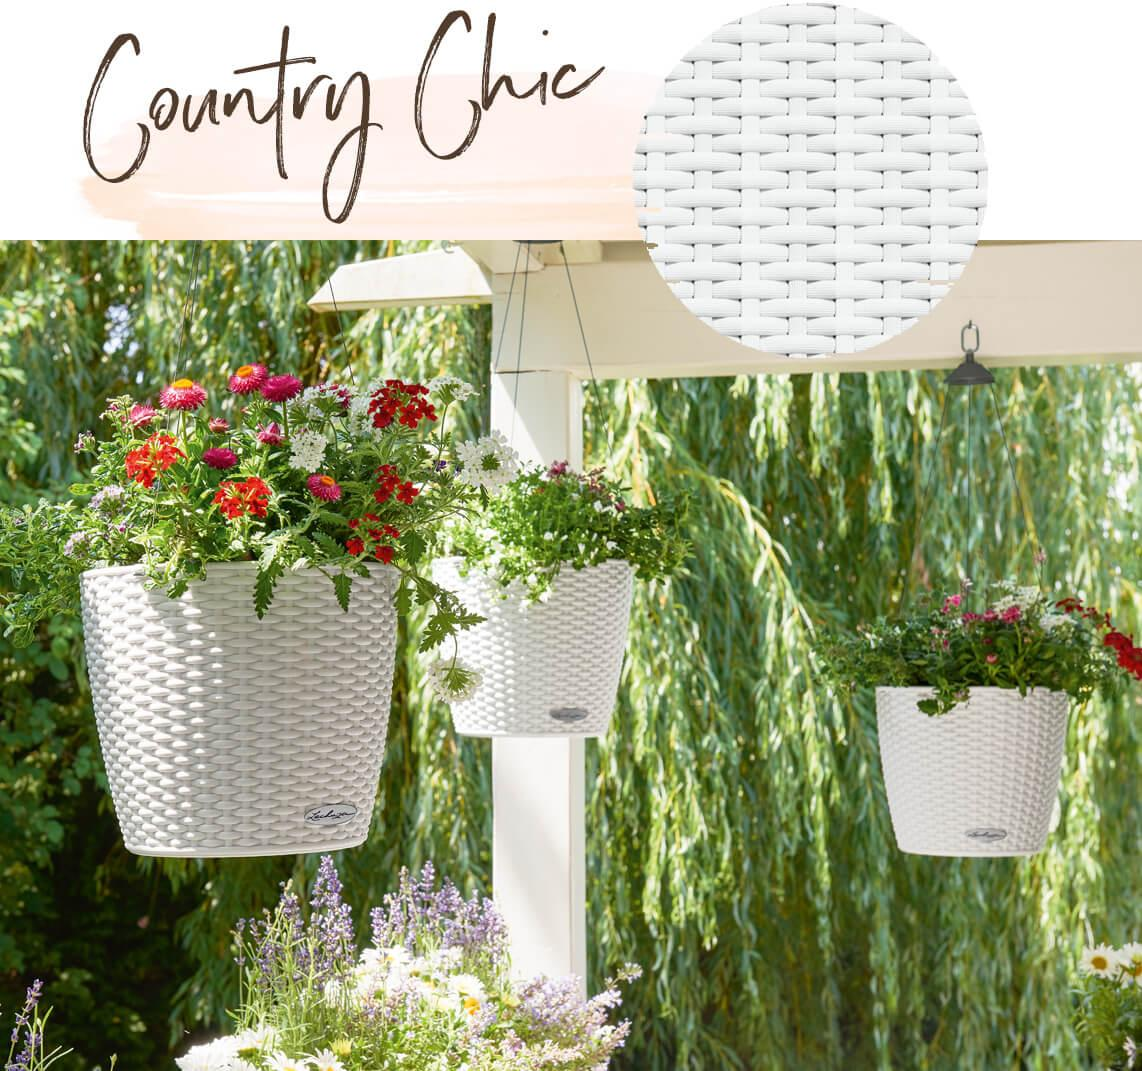 le_tw-spaetsommer_nido_countrychic